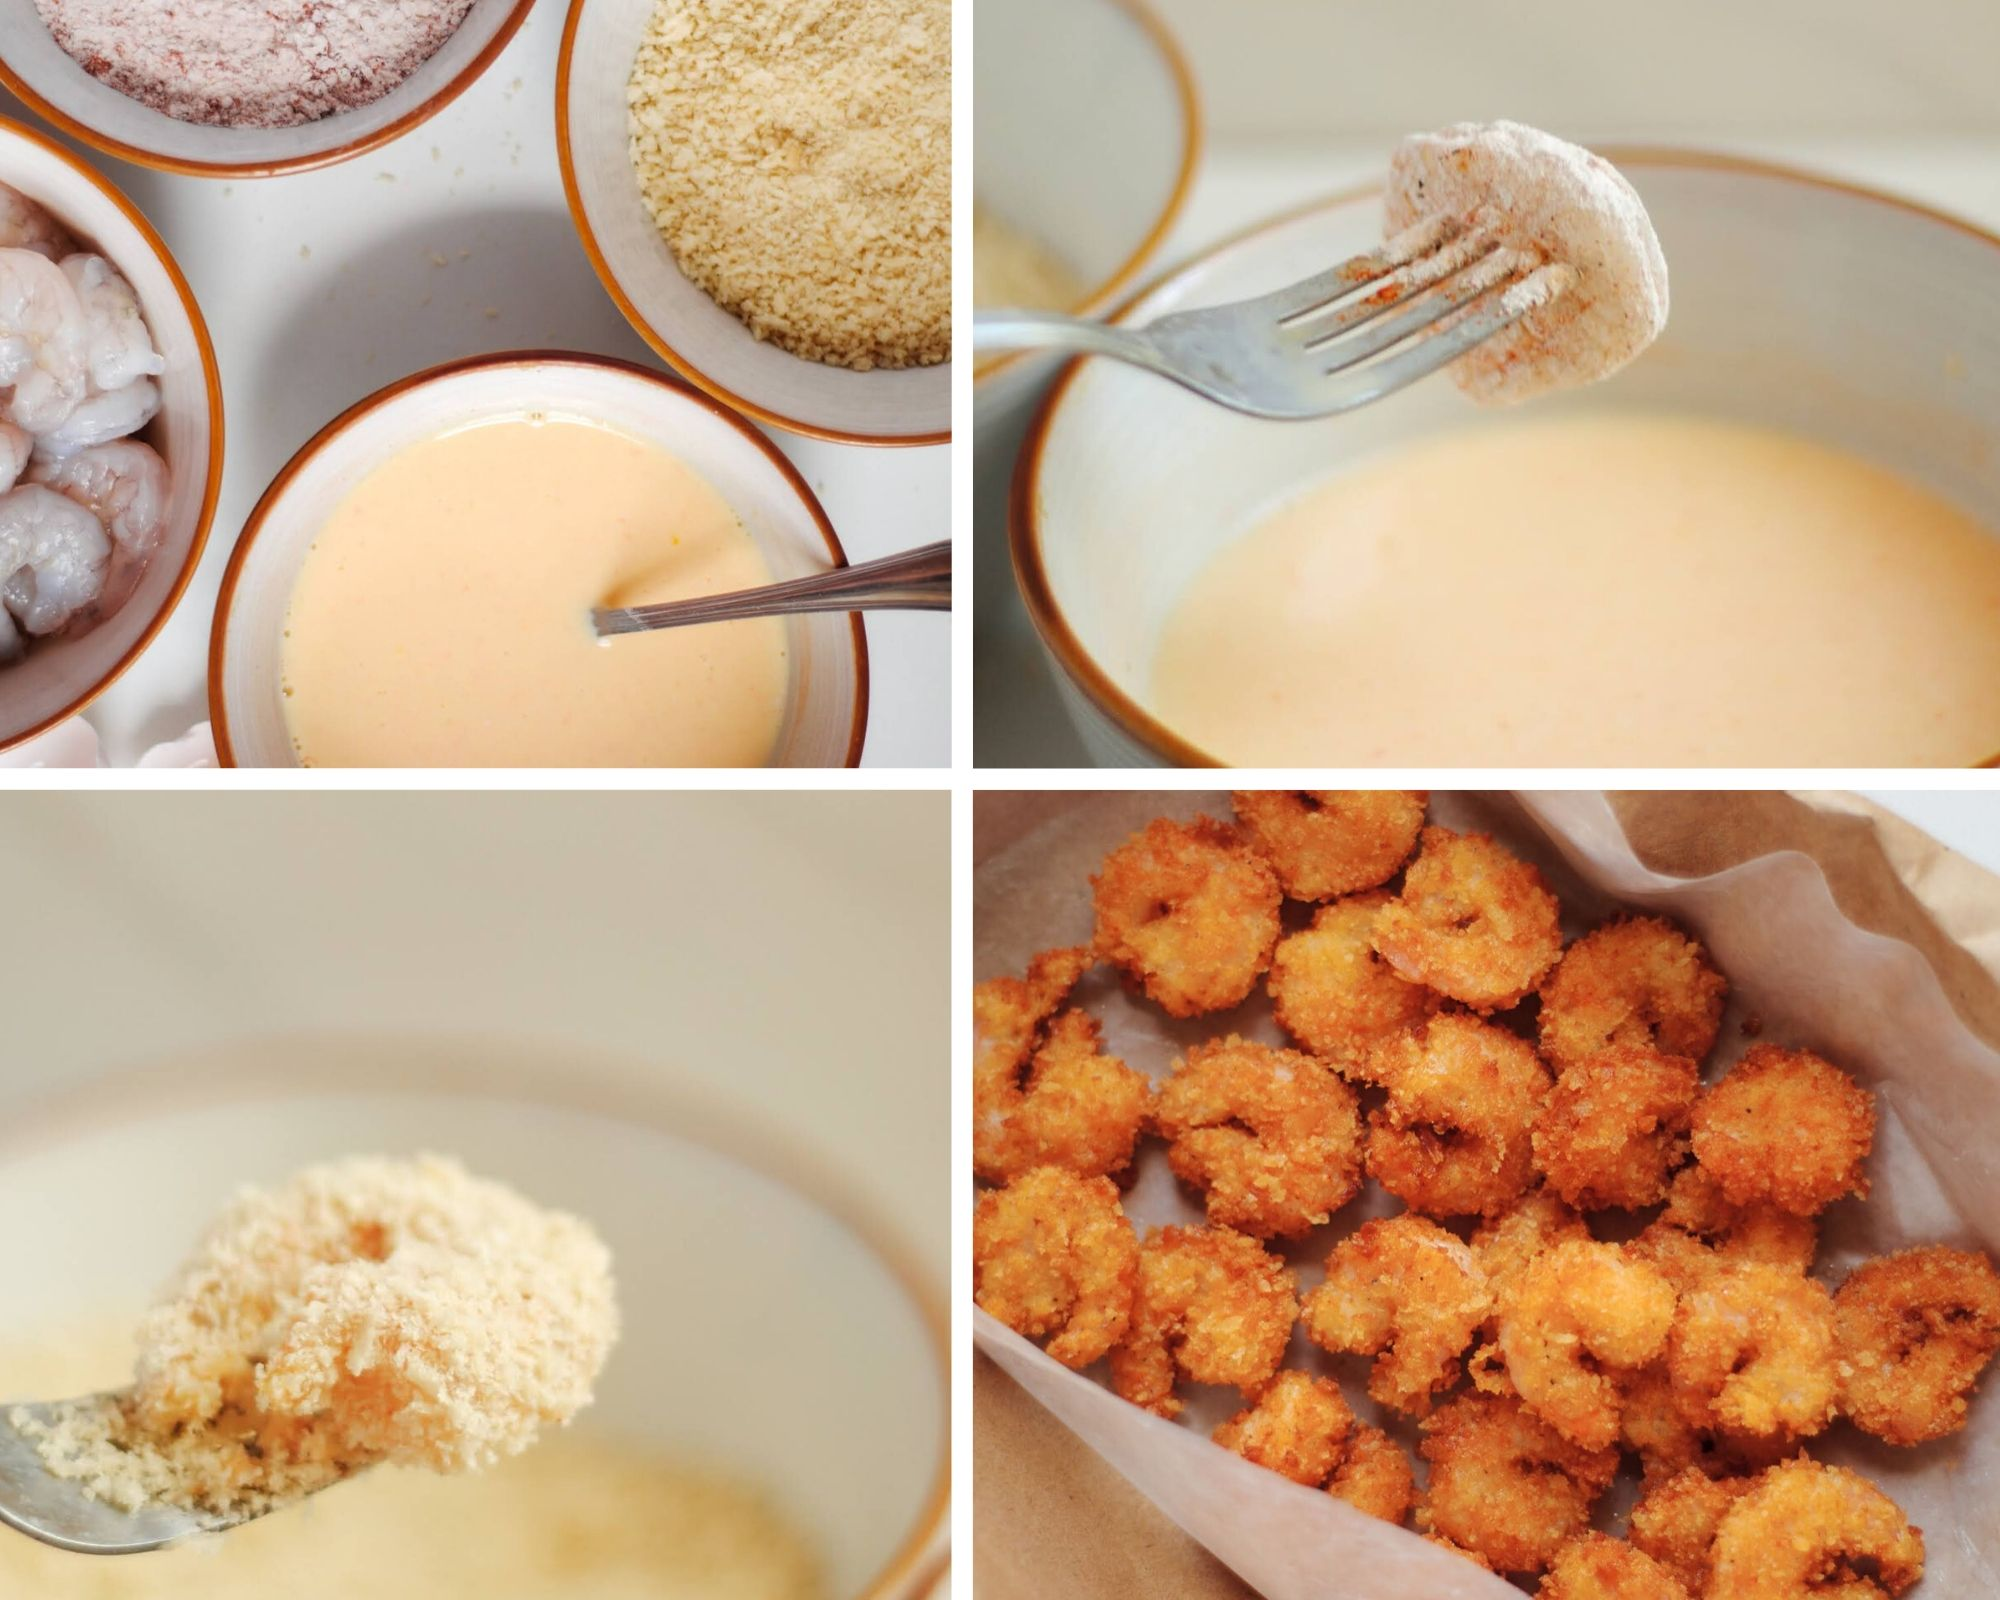 A collage with four photos, a photo with egg mixture, raw shrimp, bread crumbs, and flour. Two photos showing the shrimp being coated in egg and breadcrumbs. One photo showing a sheet pan with fried shrimp.